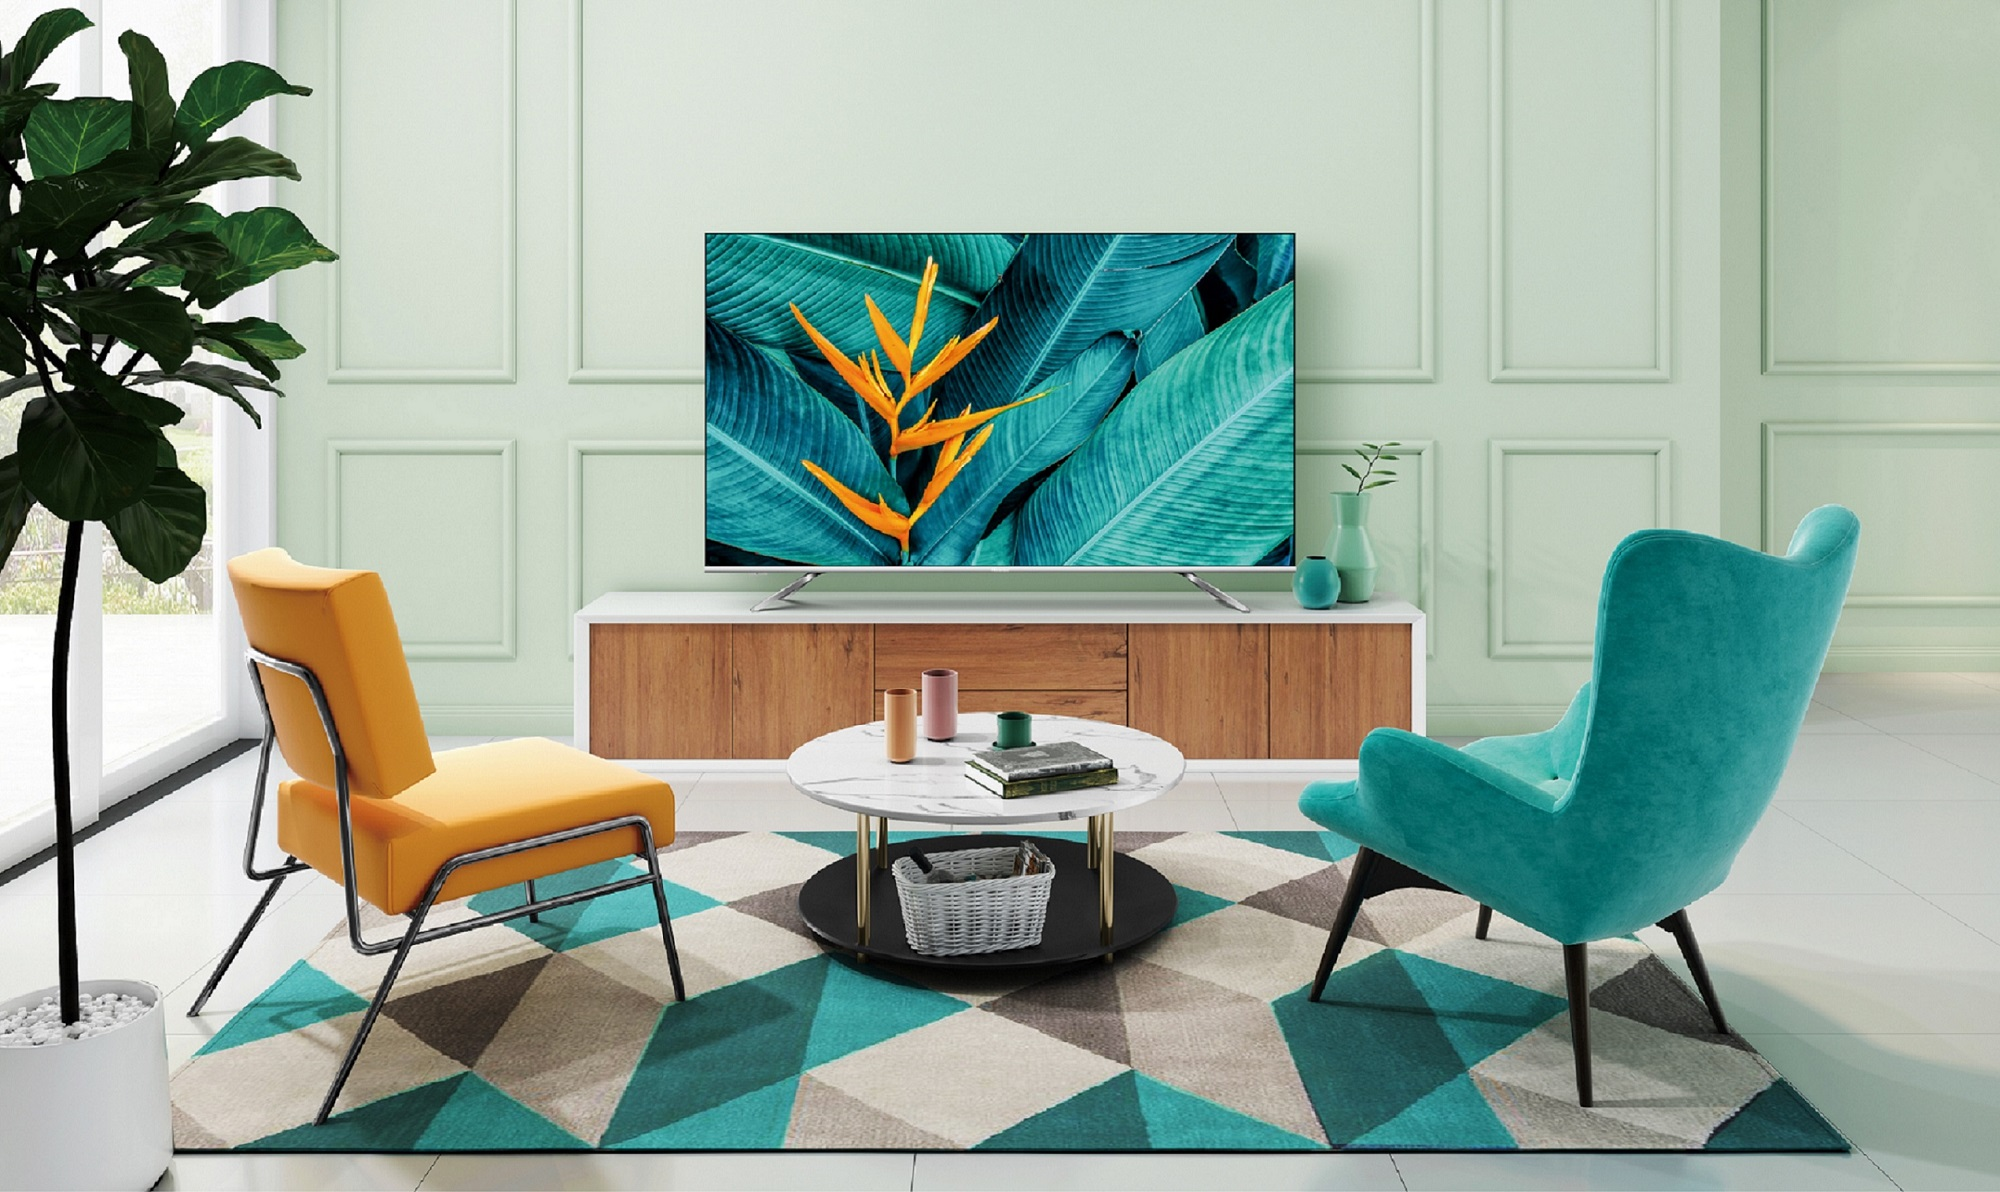 Hisense - Choose The Best TV For You!